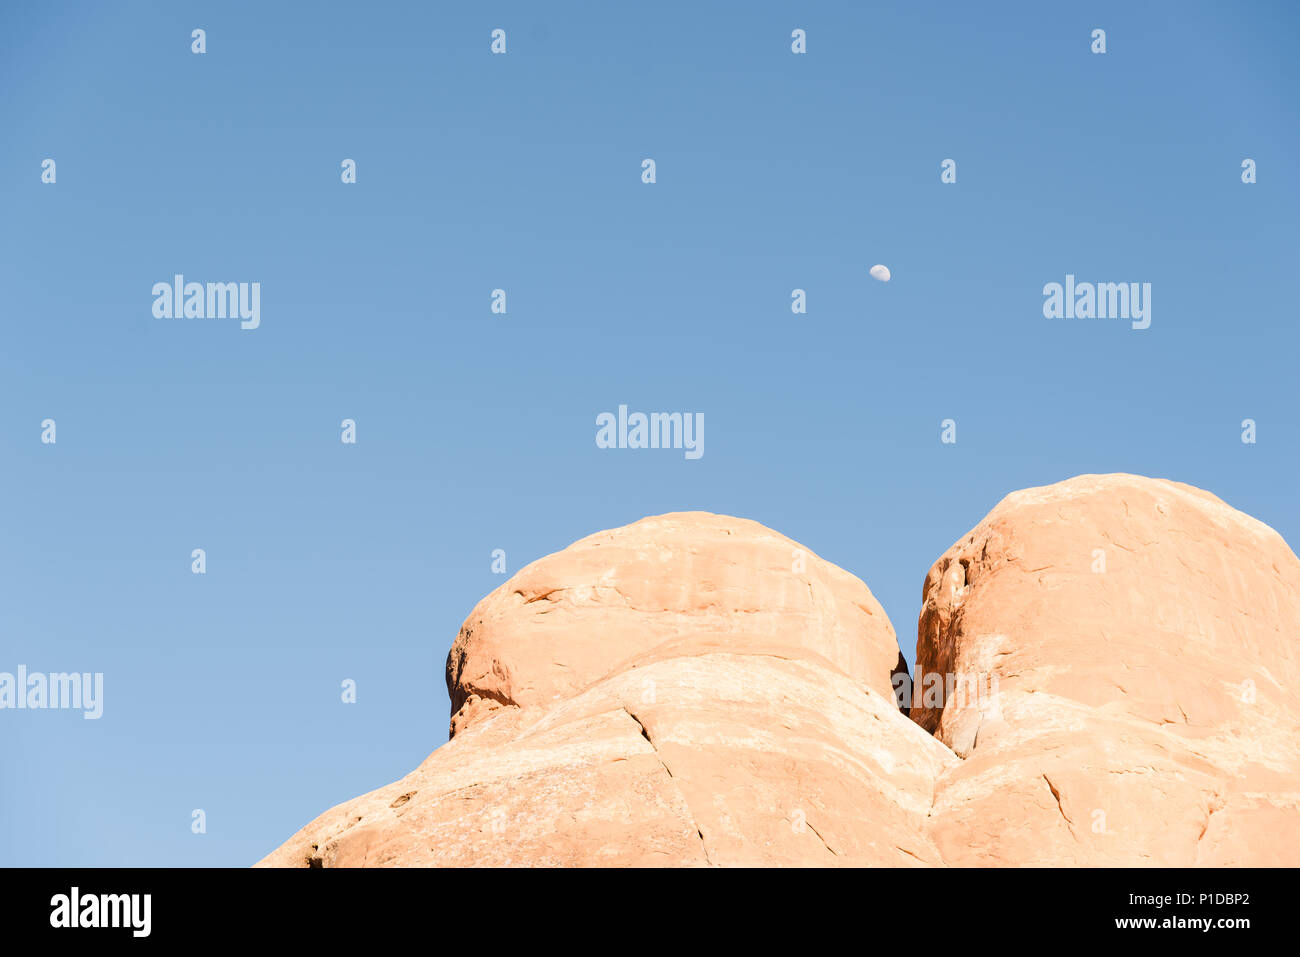 The moon between tow boulders in Arches National Park, Utah. - Stock Image